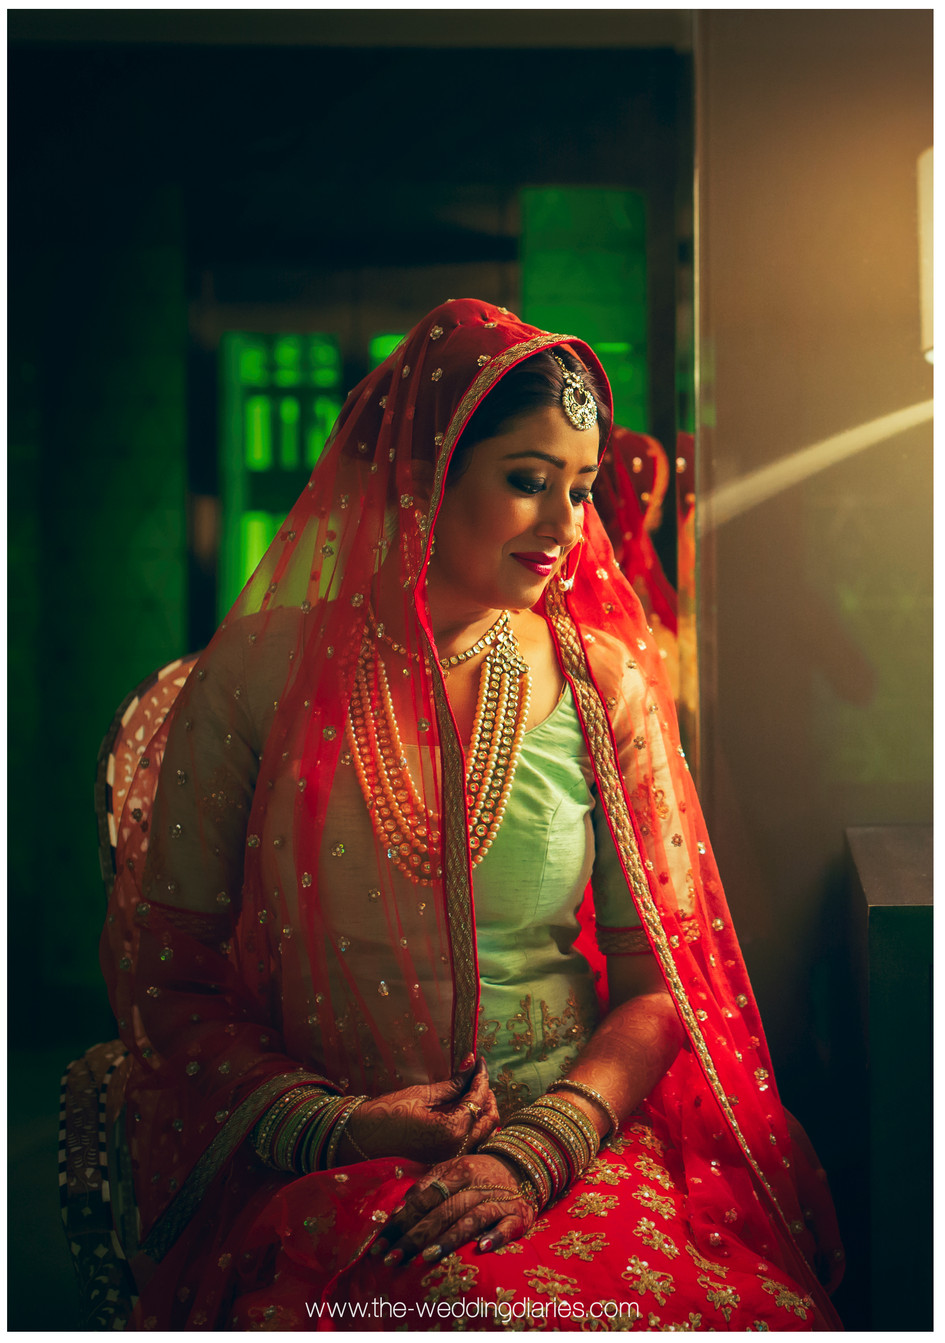 The Wedding Diaries - Bridal Portrait of Jiya